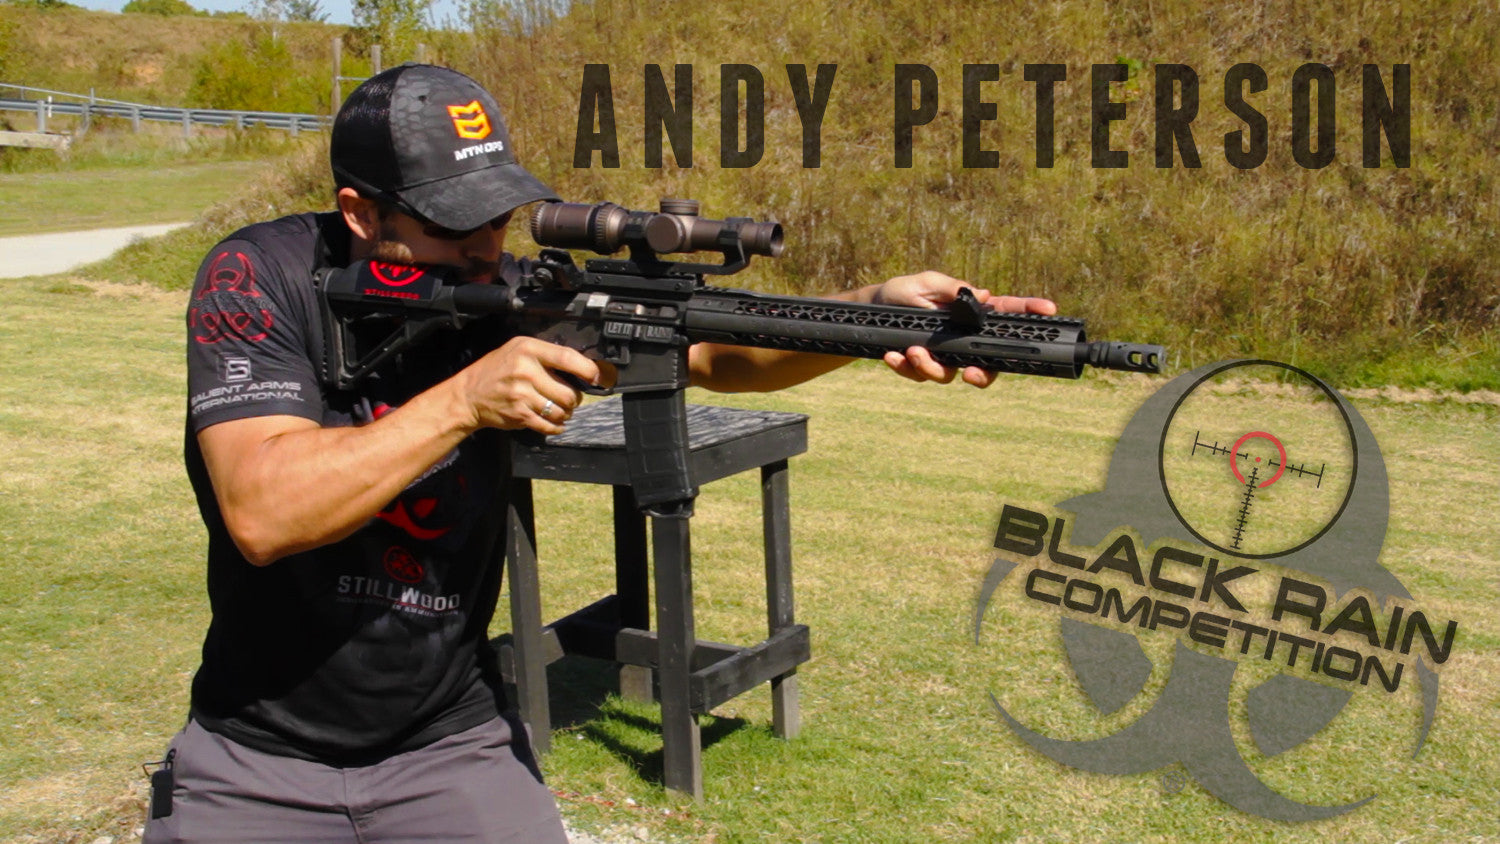 VIDEO: Black Rain Ordnance Pro Shooter Andy Peterson Shows off his Custom AR15 Rifle.